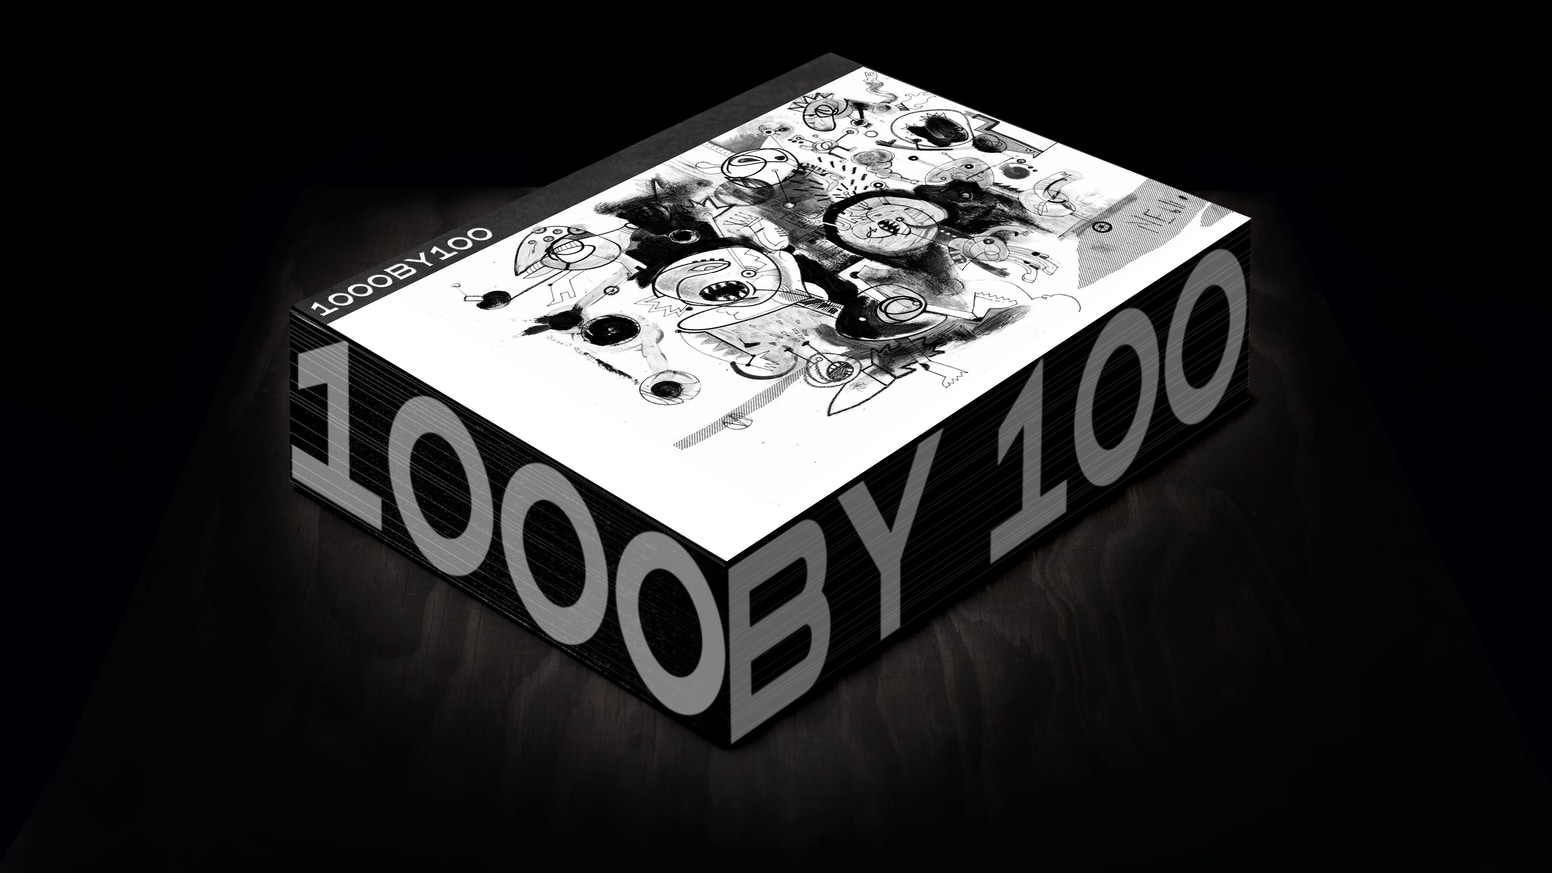 1000BY100 is a 1000-page book with 100 amazing artists.